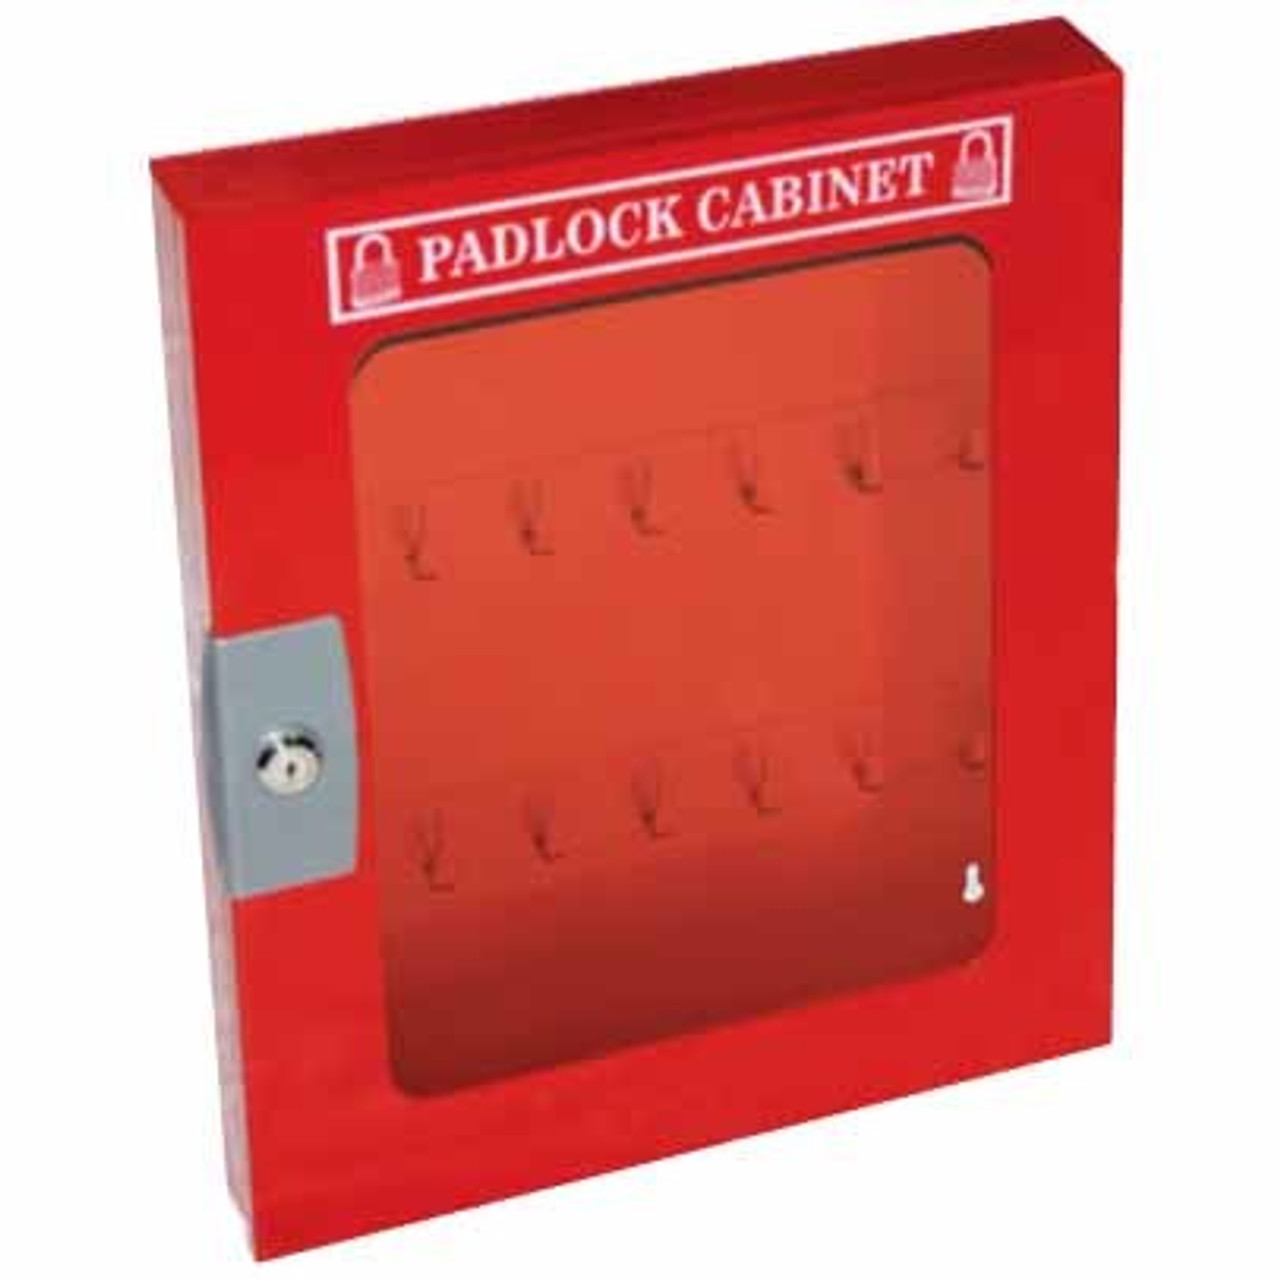 Padlock Cabinet with Clear Fascia